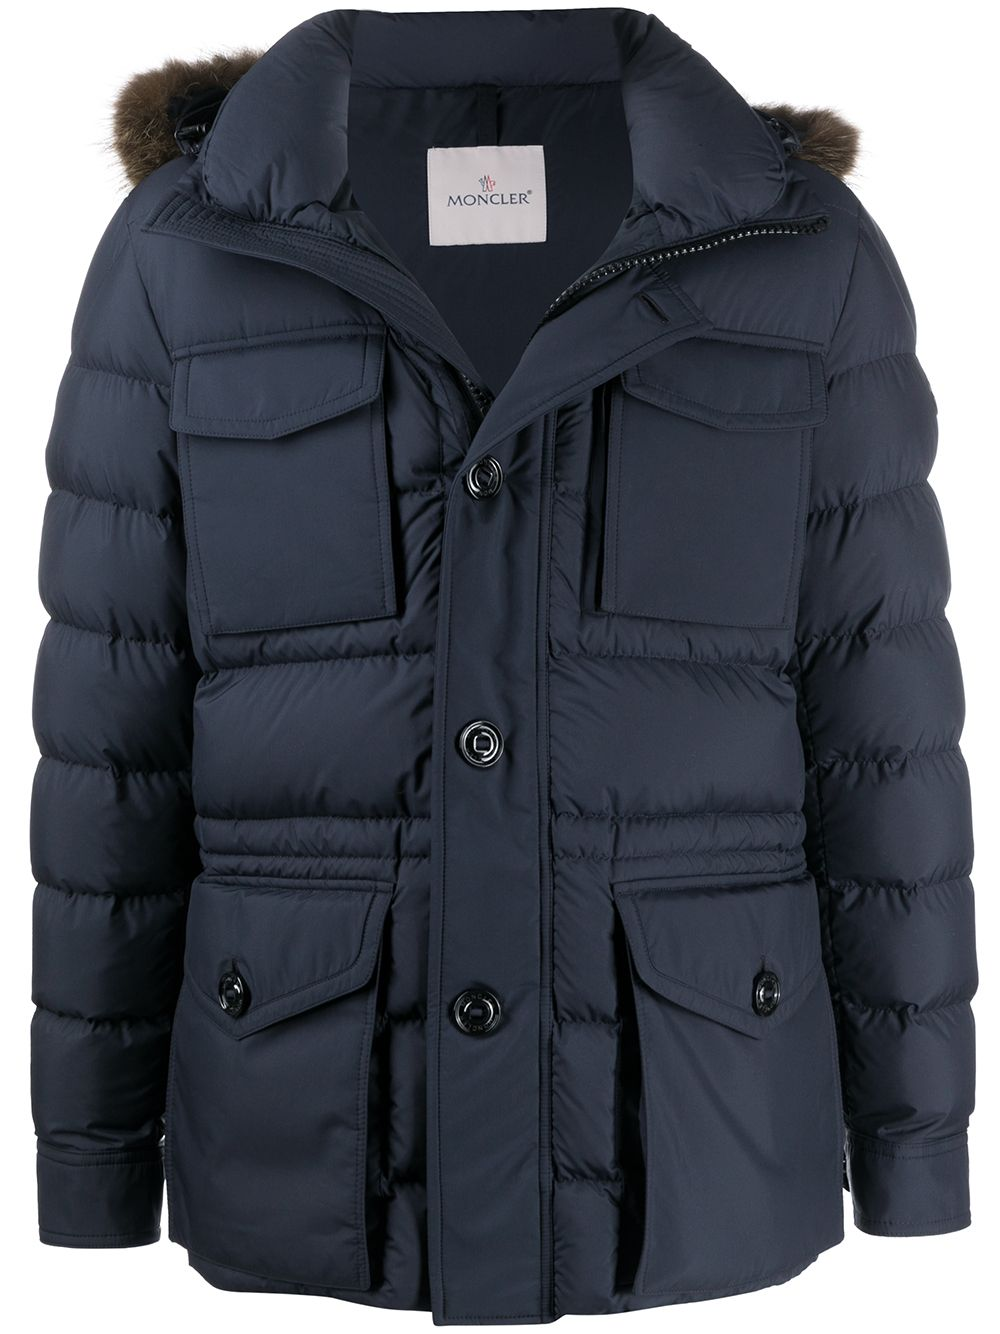 Moncler Parka coat with fur hood navy